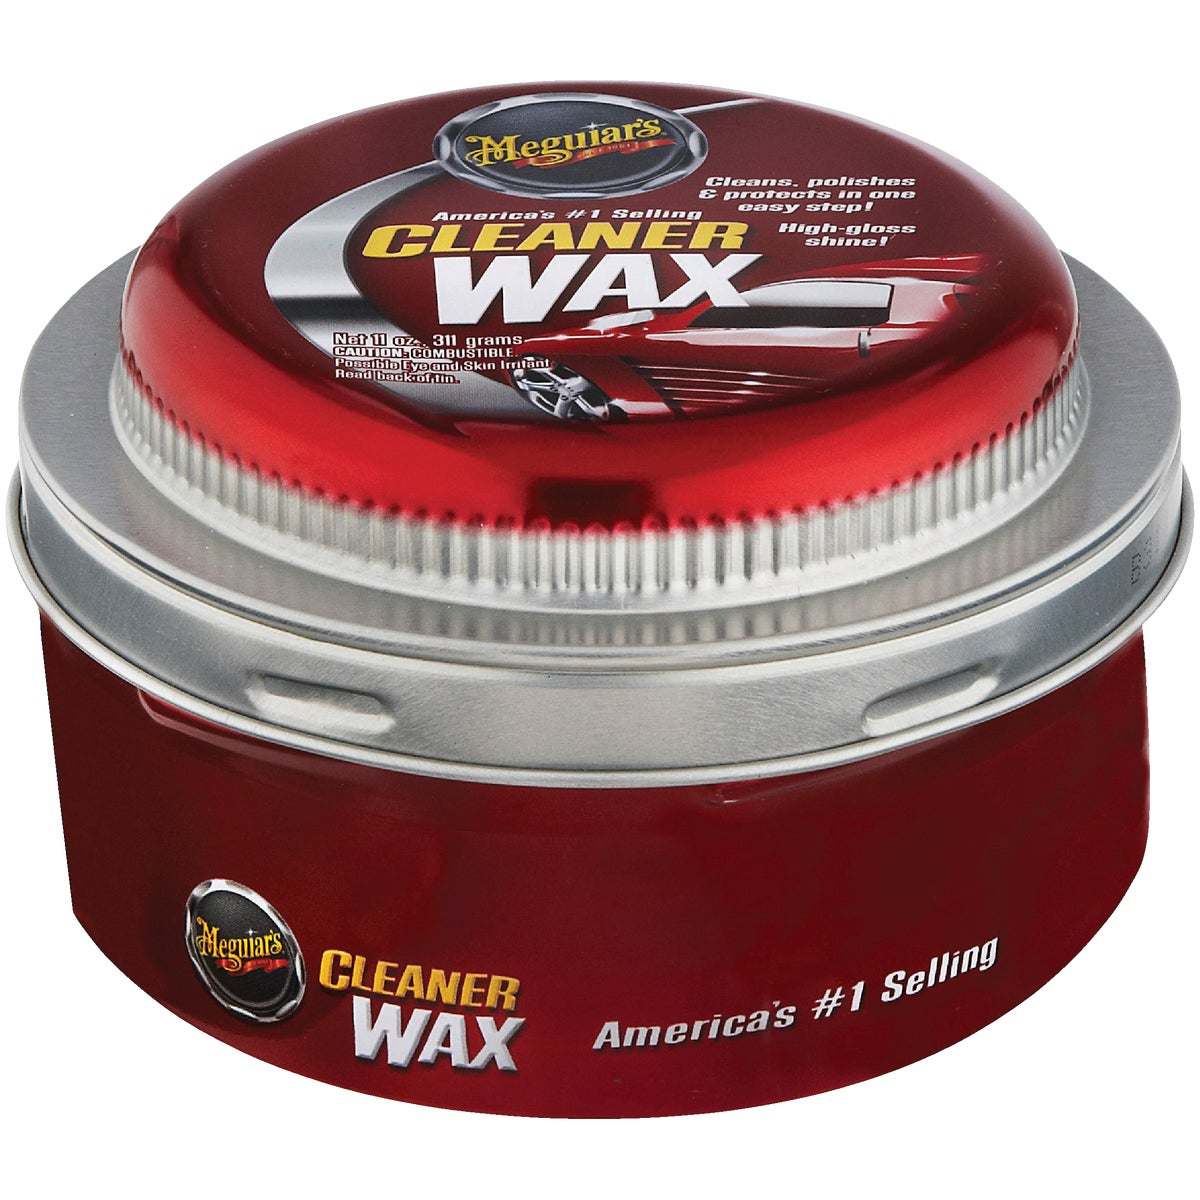 14OZ PASTE CLEANER WAX - A1214 by Meguiars Inc